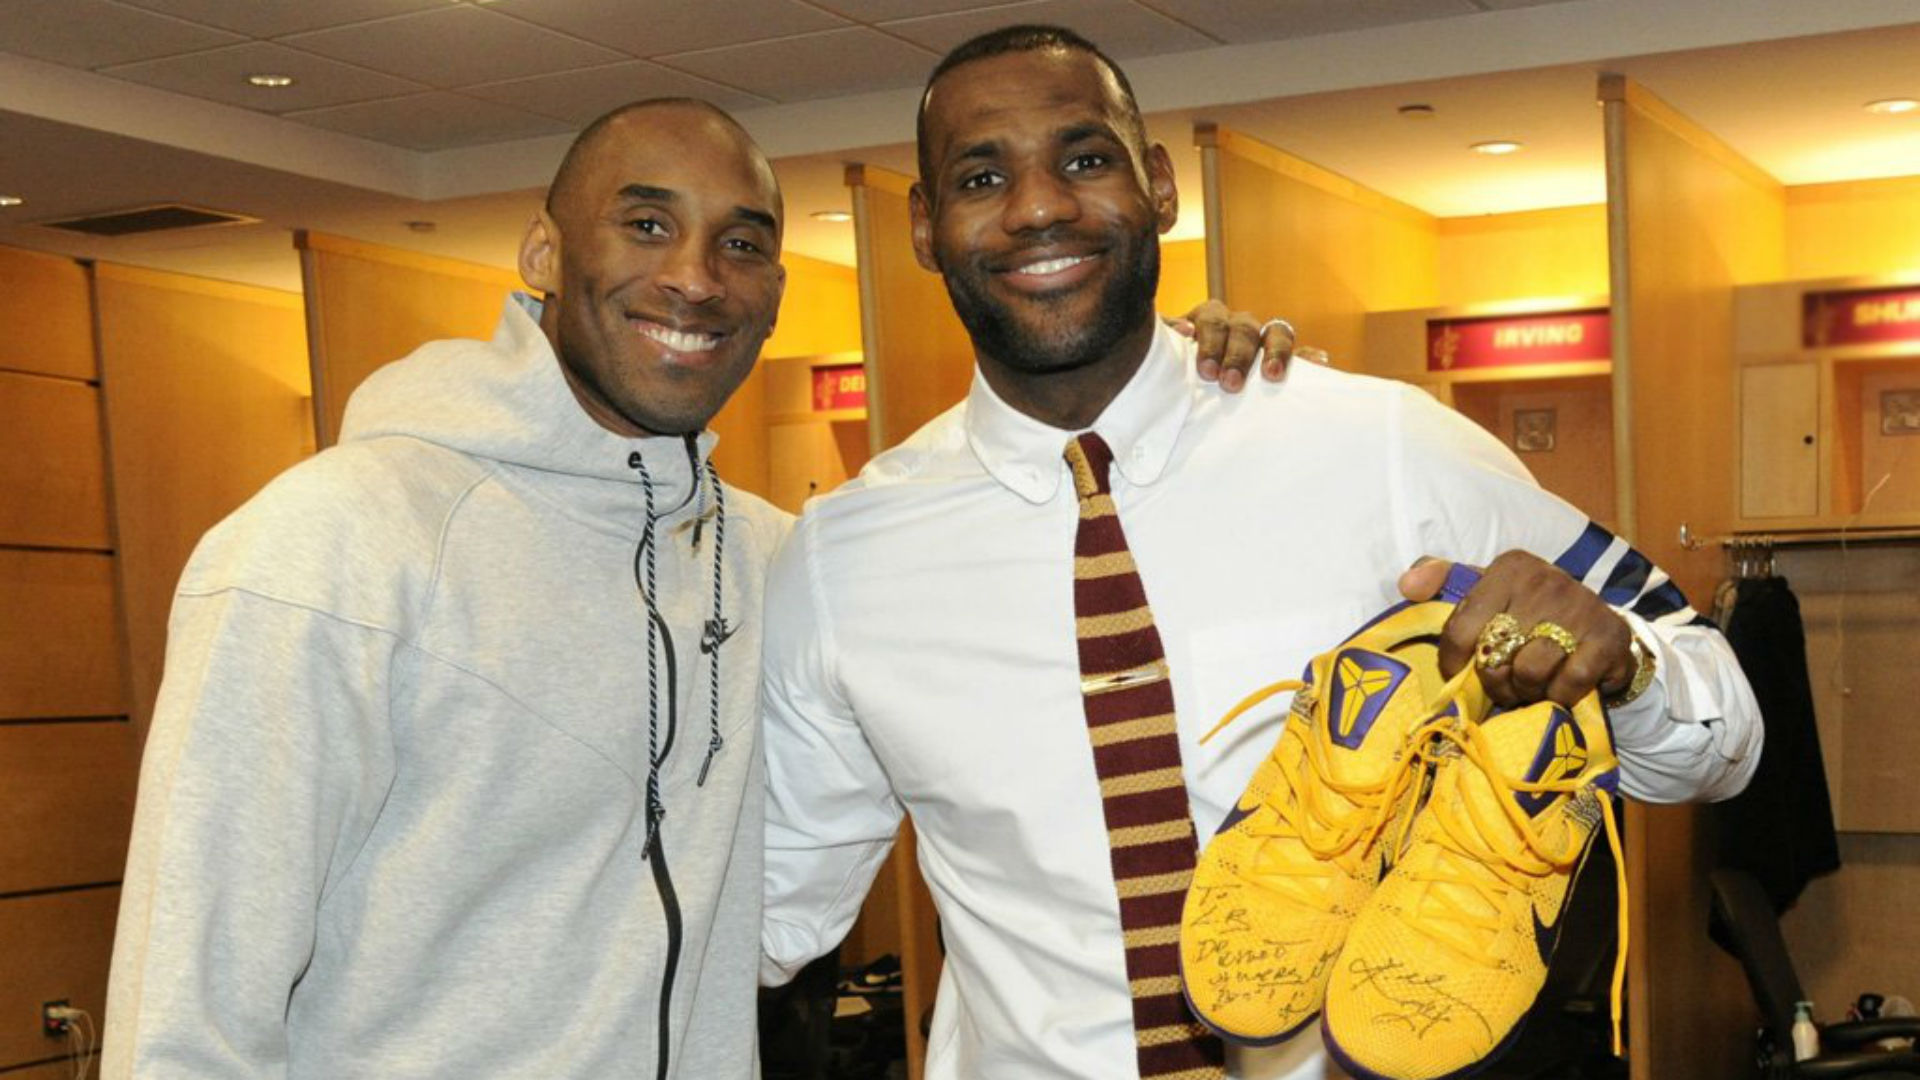 d84a1b10697f0 ... Griffin s first signature training shoe with adidas. Bryant signed his  game-worn Kobe 11s for LeBron James in February following their final